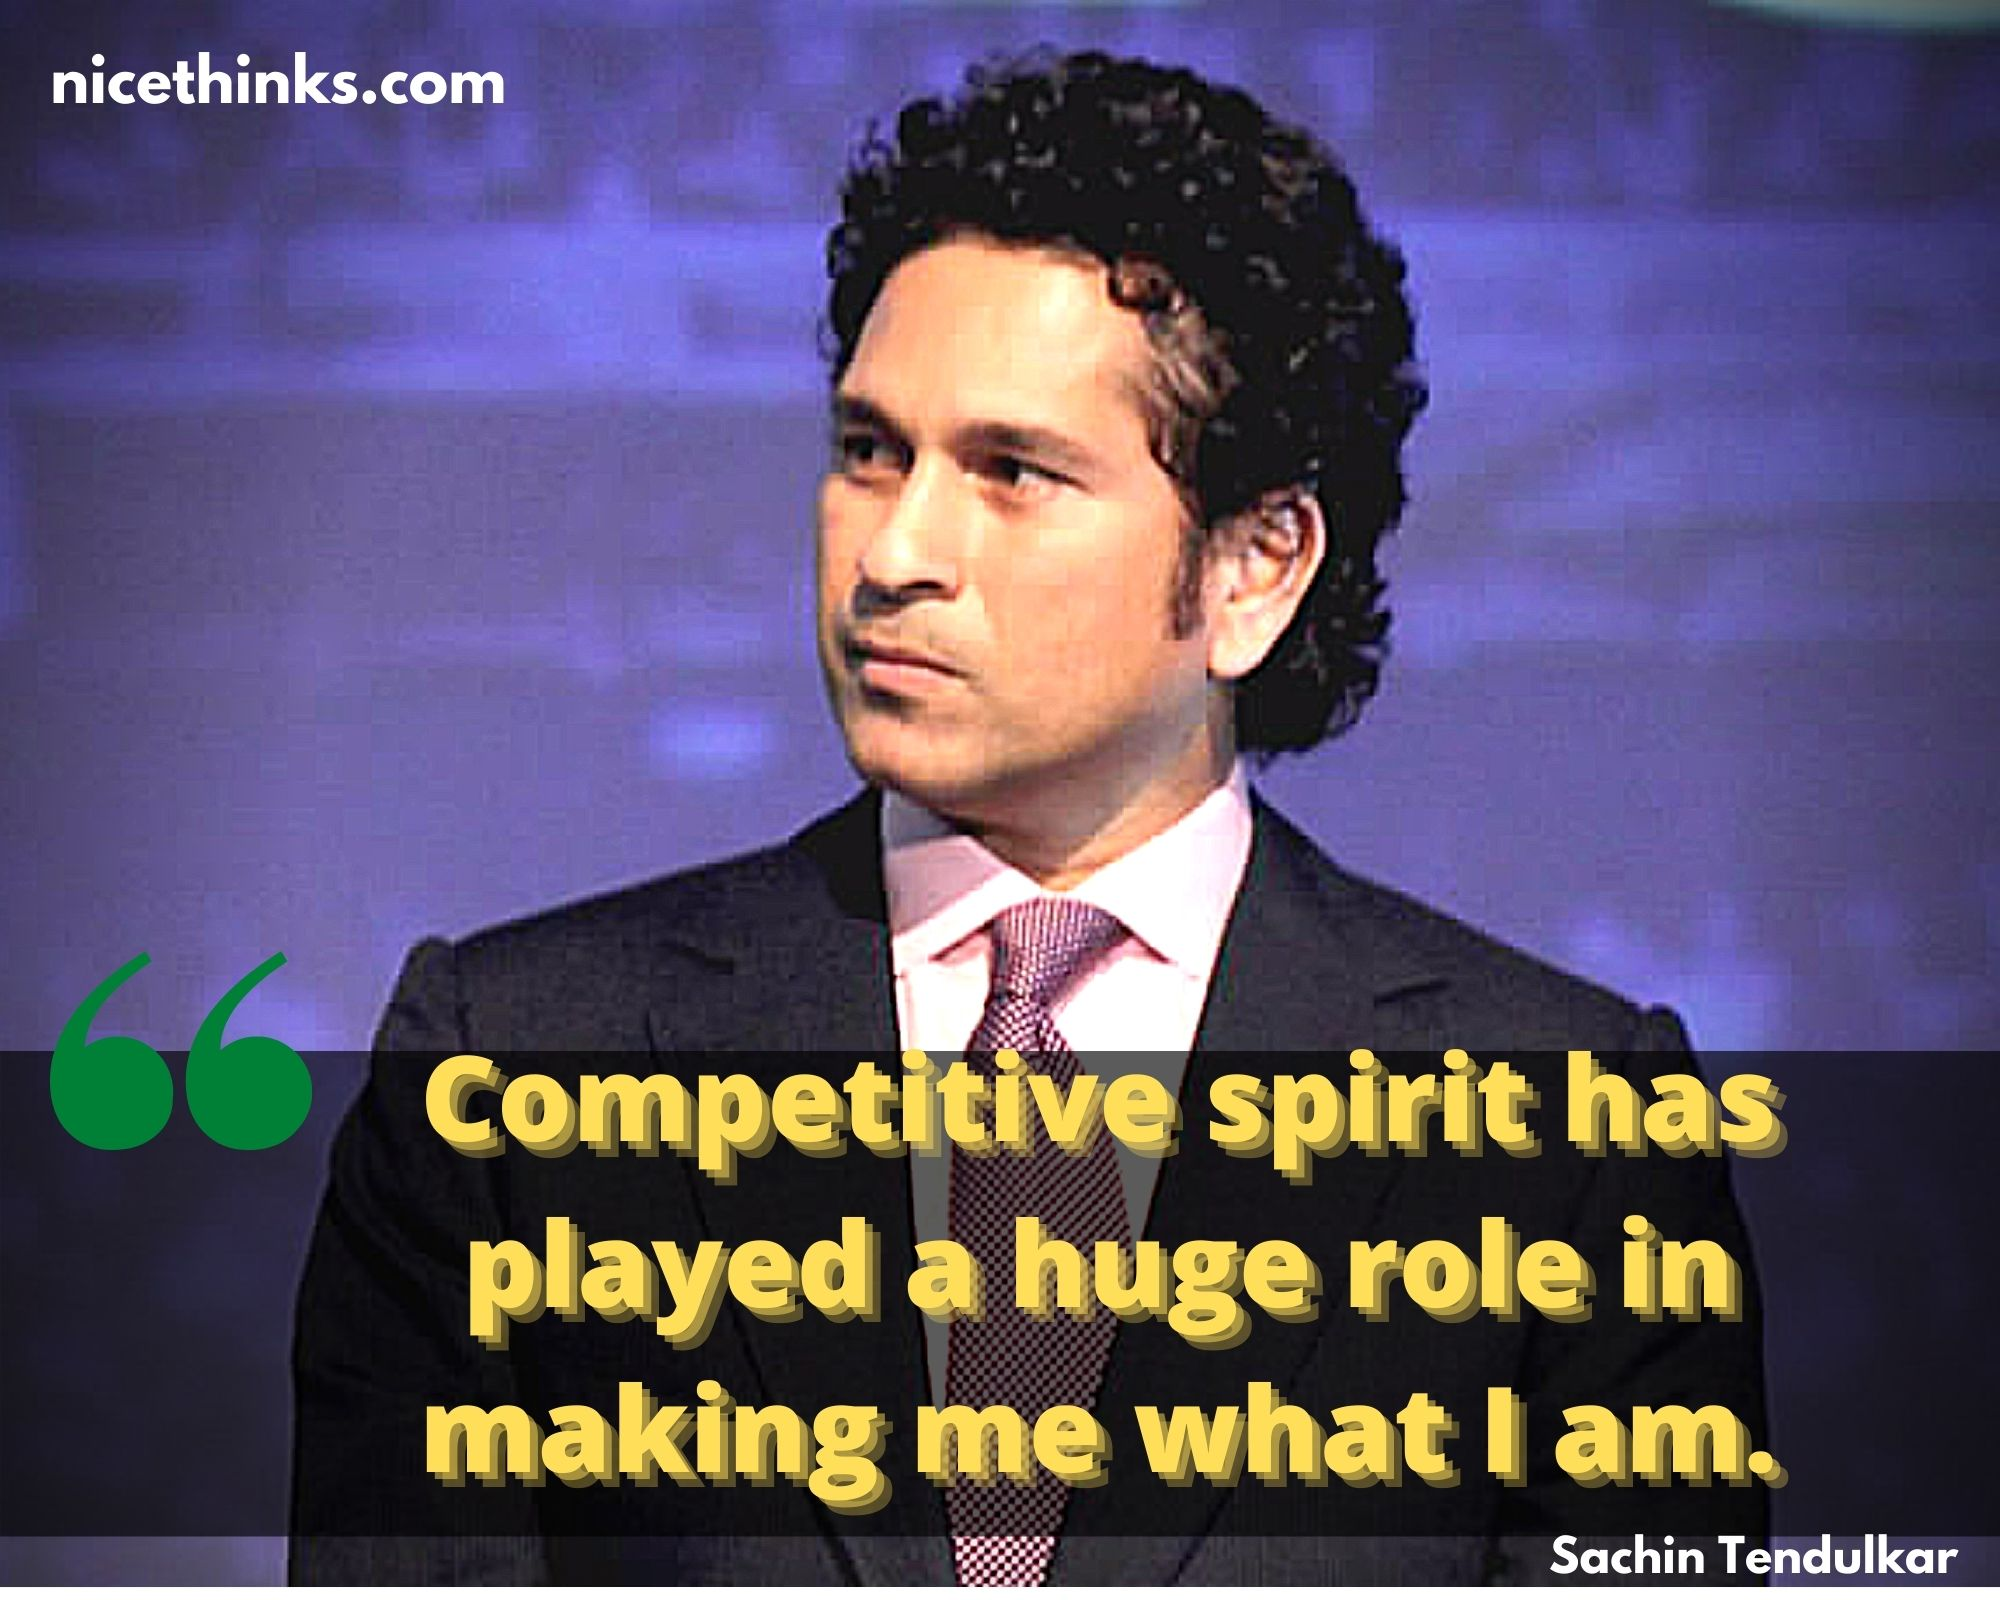 sachin tendulkar images with quotes